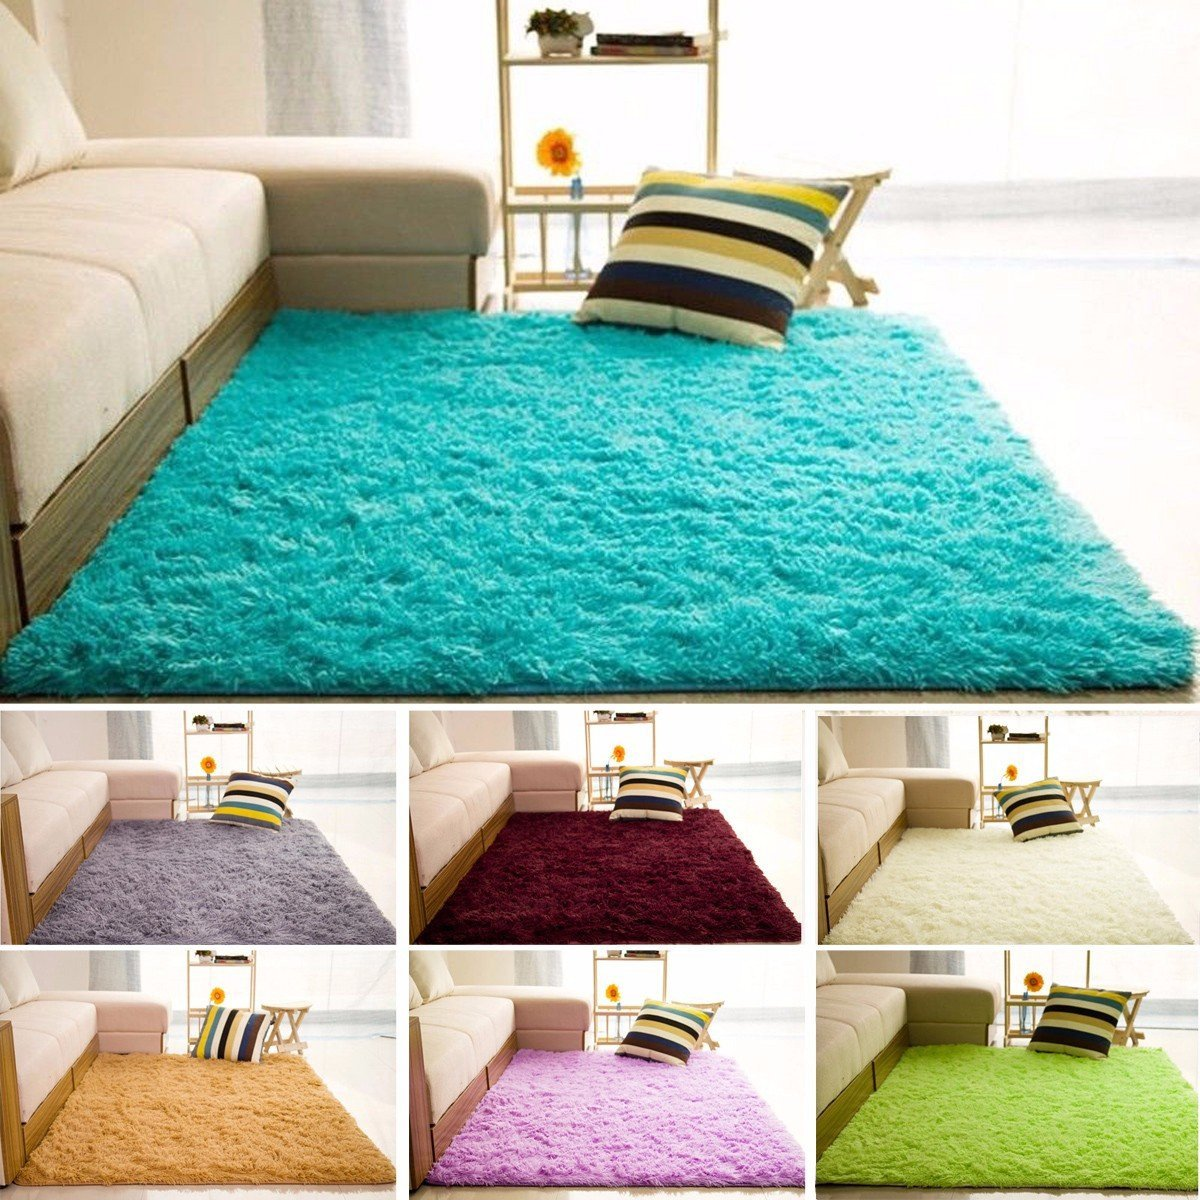 Cute Rugs for Bedroom Fresh 80x200cm Fluffy Living Room Anti Slip Carpet Floor Mats Yoga Bedroom Rag Rugs Shag Rugs